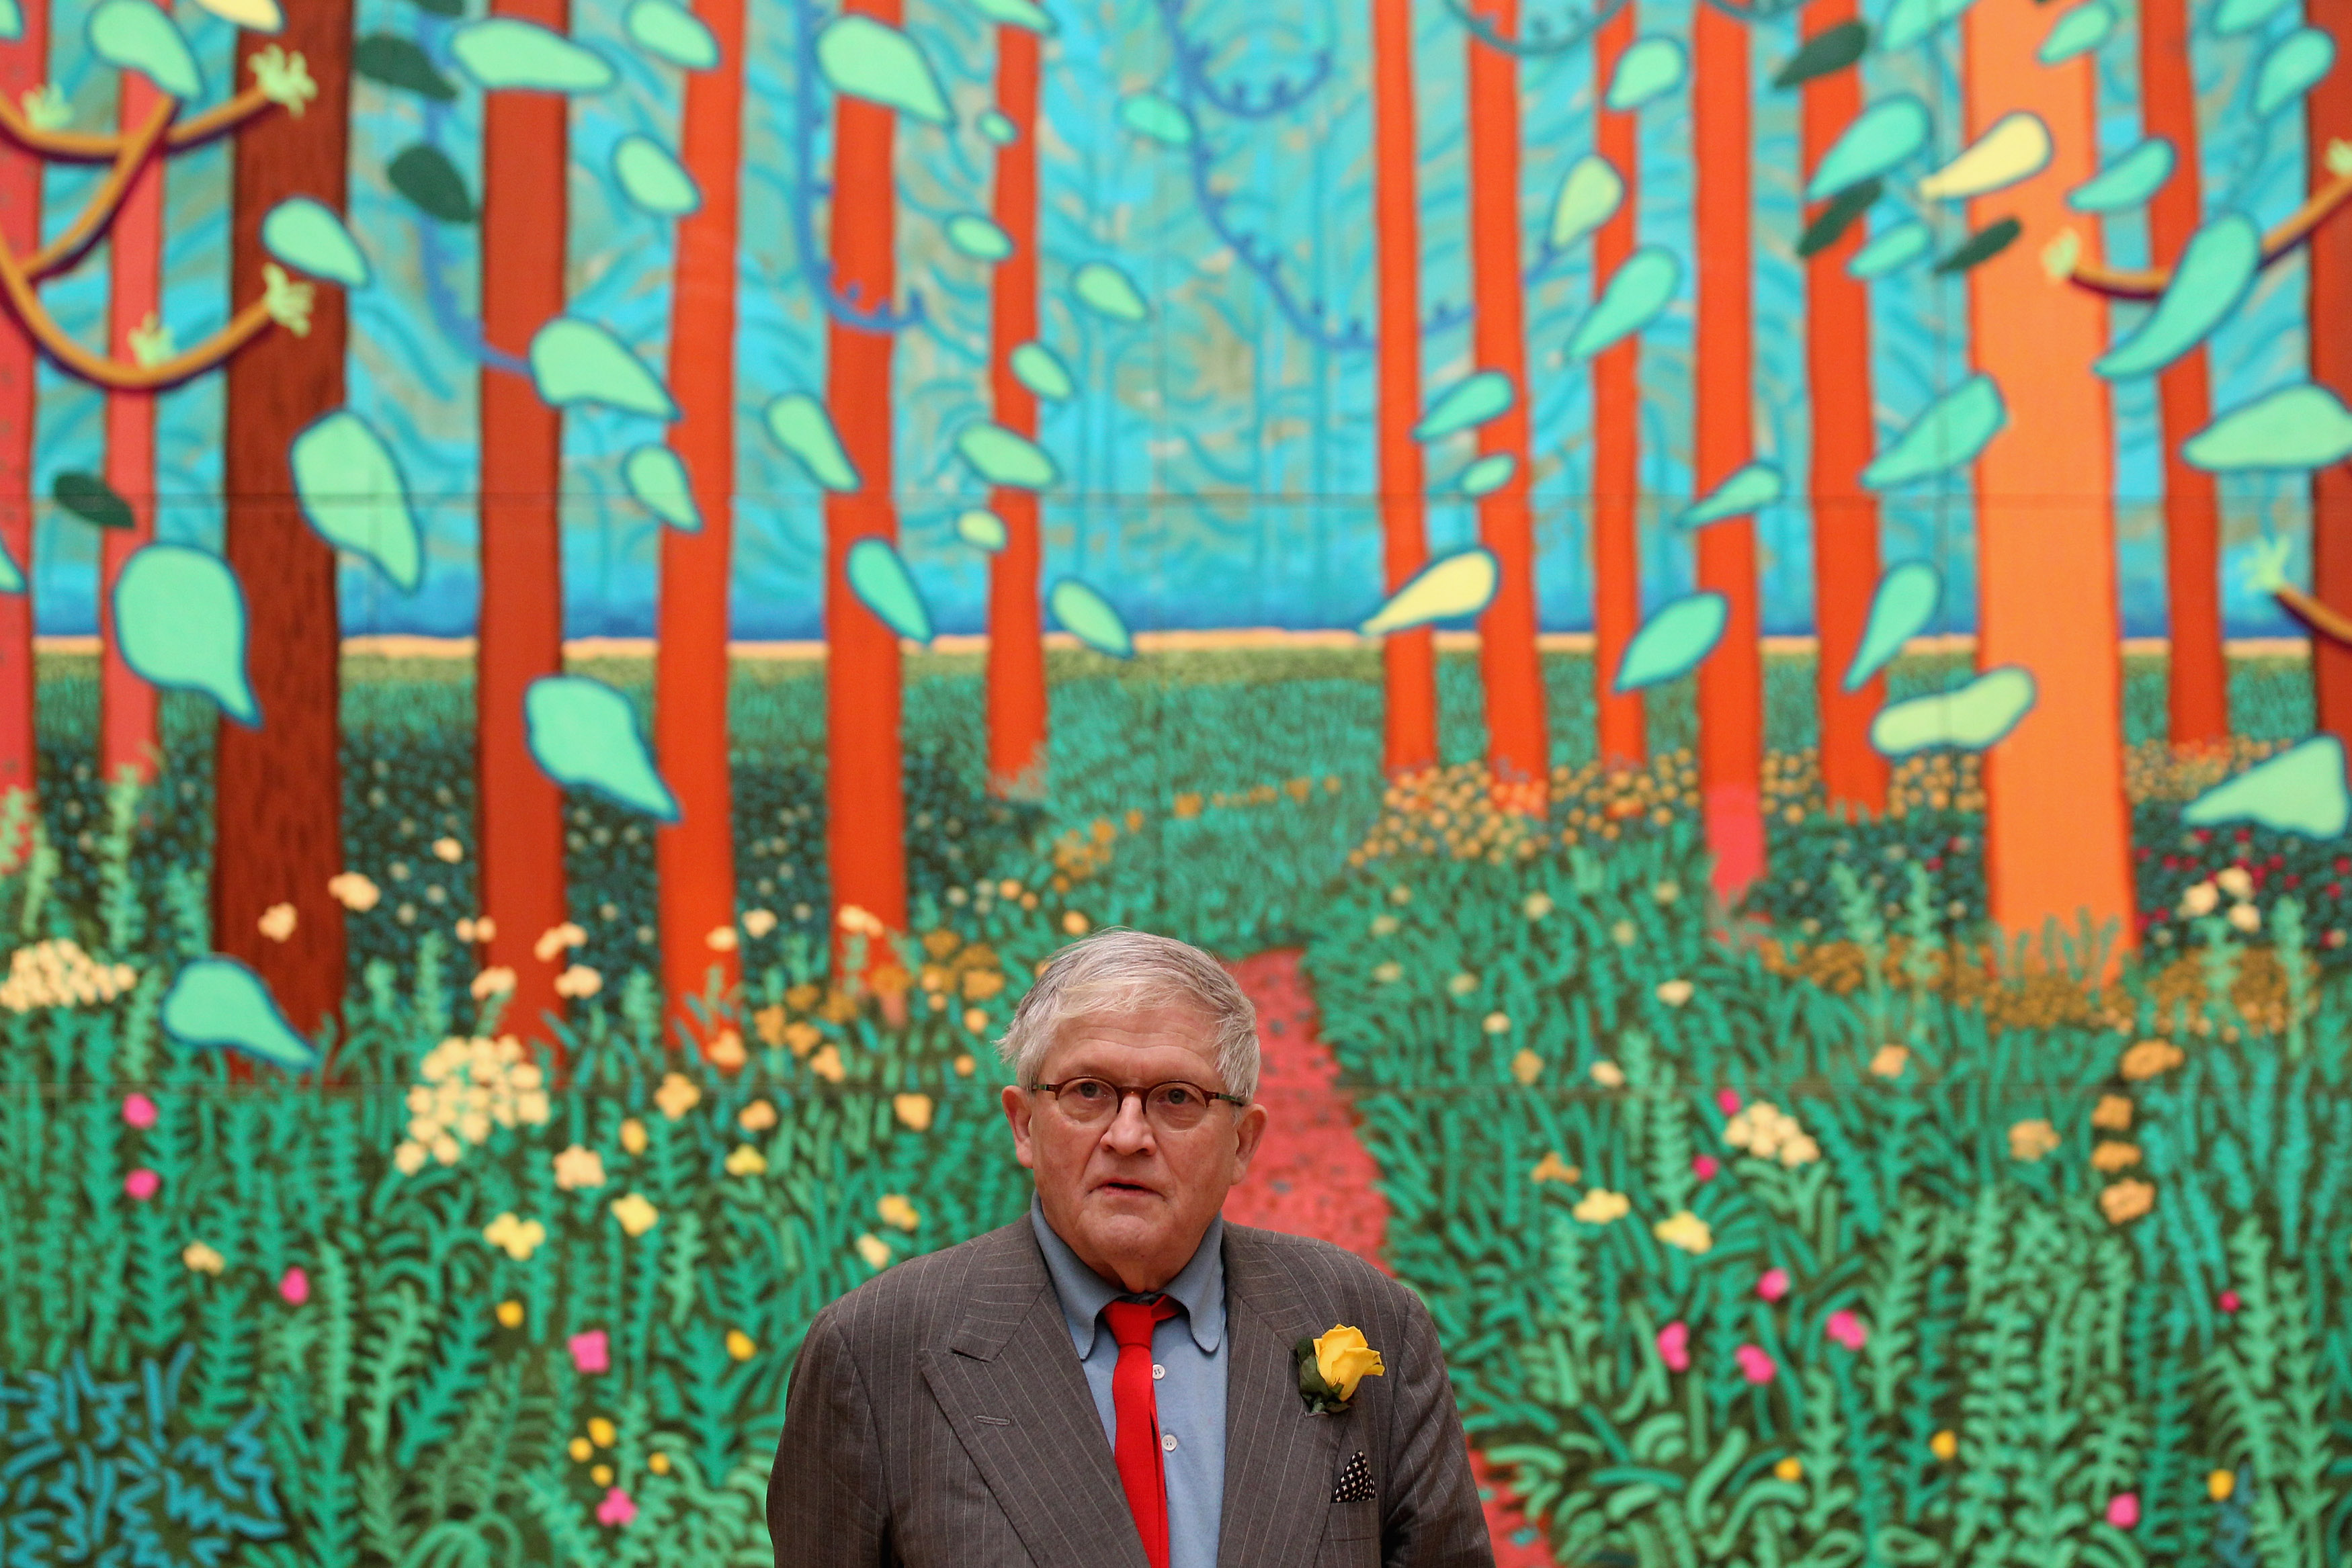 David Hockney on the Imperialism of Western Perspective in Art and the Benefits of Virtual Reality (for Porn)